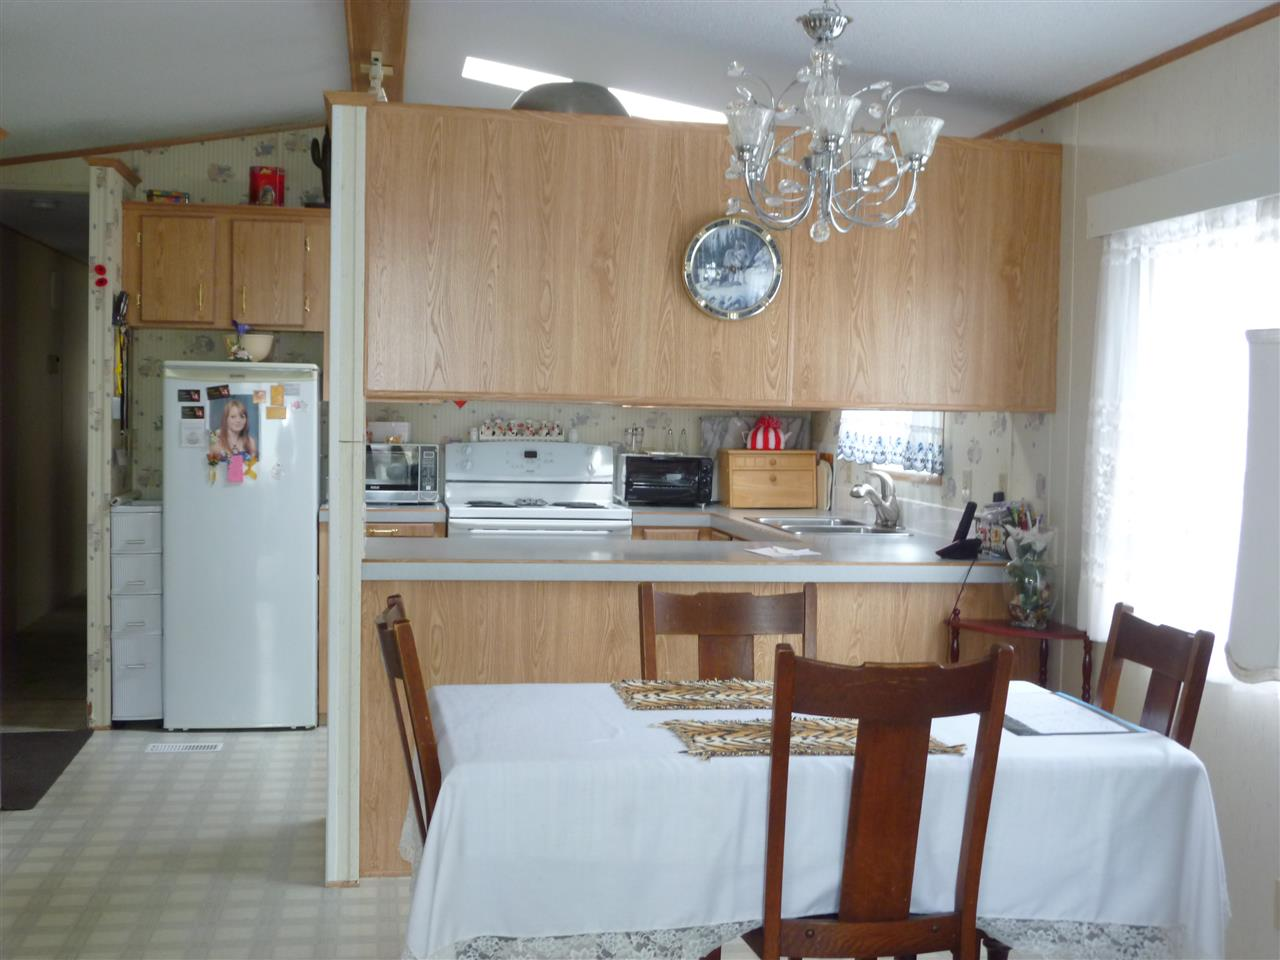 "Photo 3: Photos: 14 5575 MASON Road in Sechelt: Sechelt District Manufactured Home for sale in ""MASON RD MOBILE HOME PARK"" (Sunshine Coast)  : MLS®# R2056997"